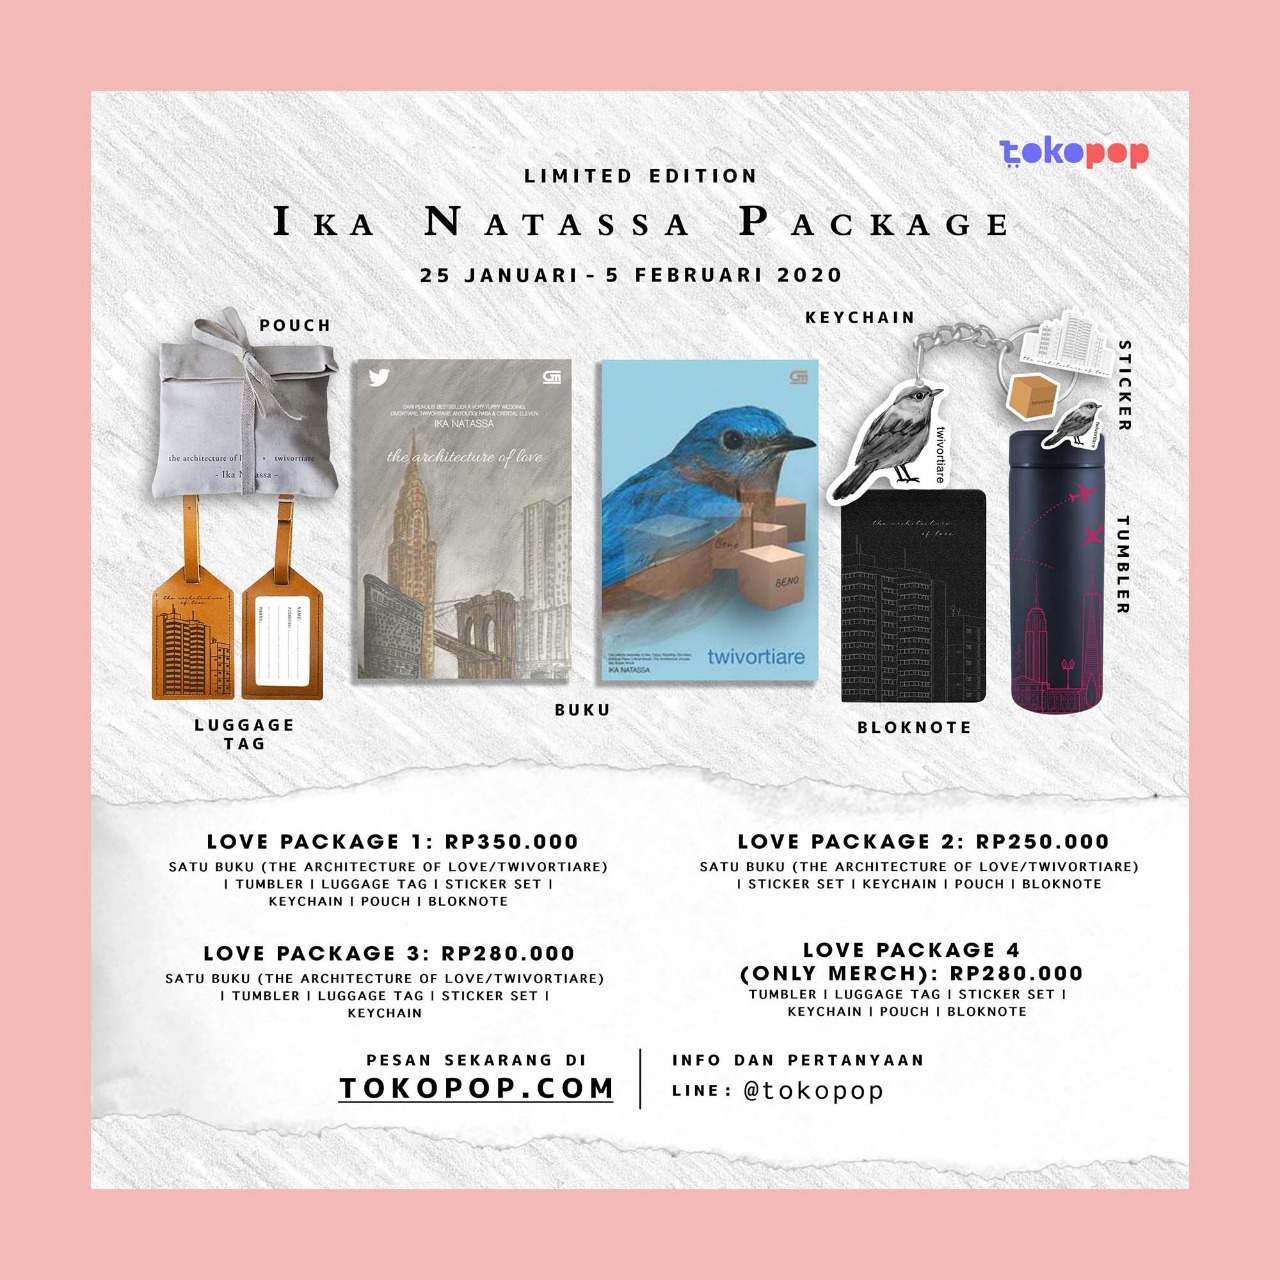 Limited Edition Ika Natassa Package